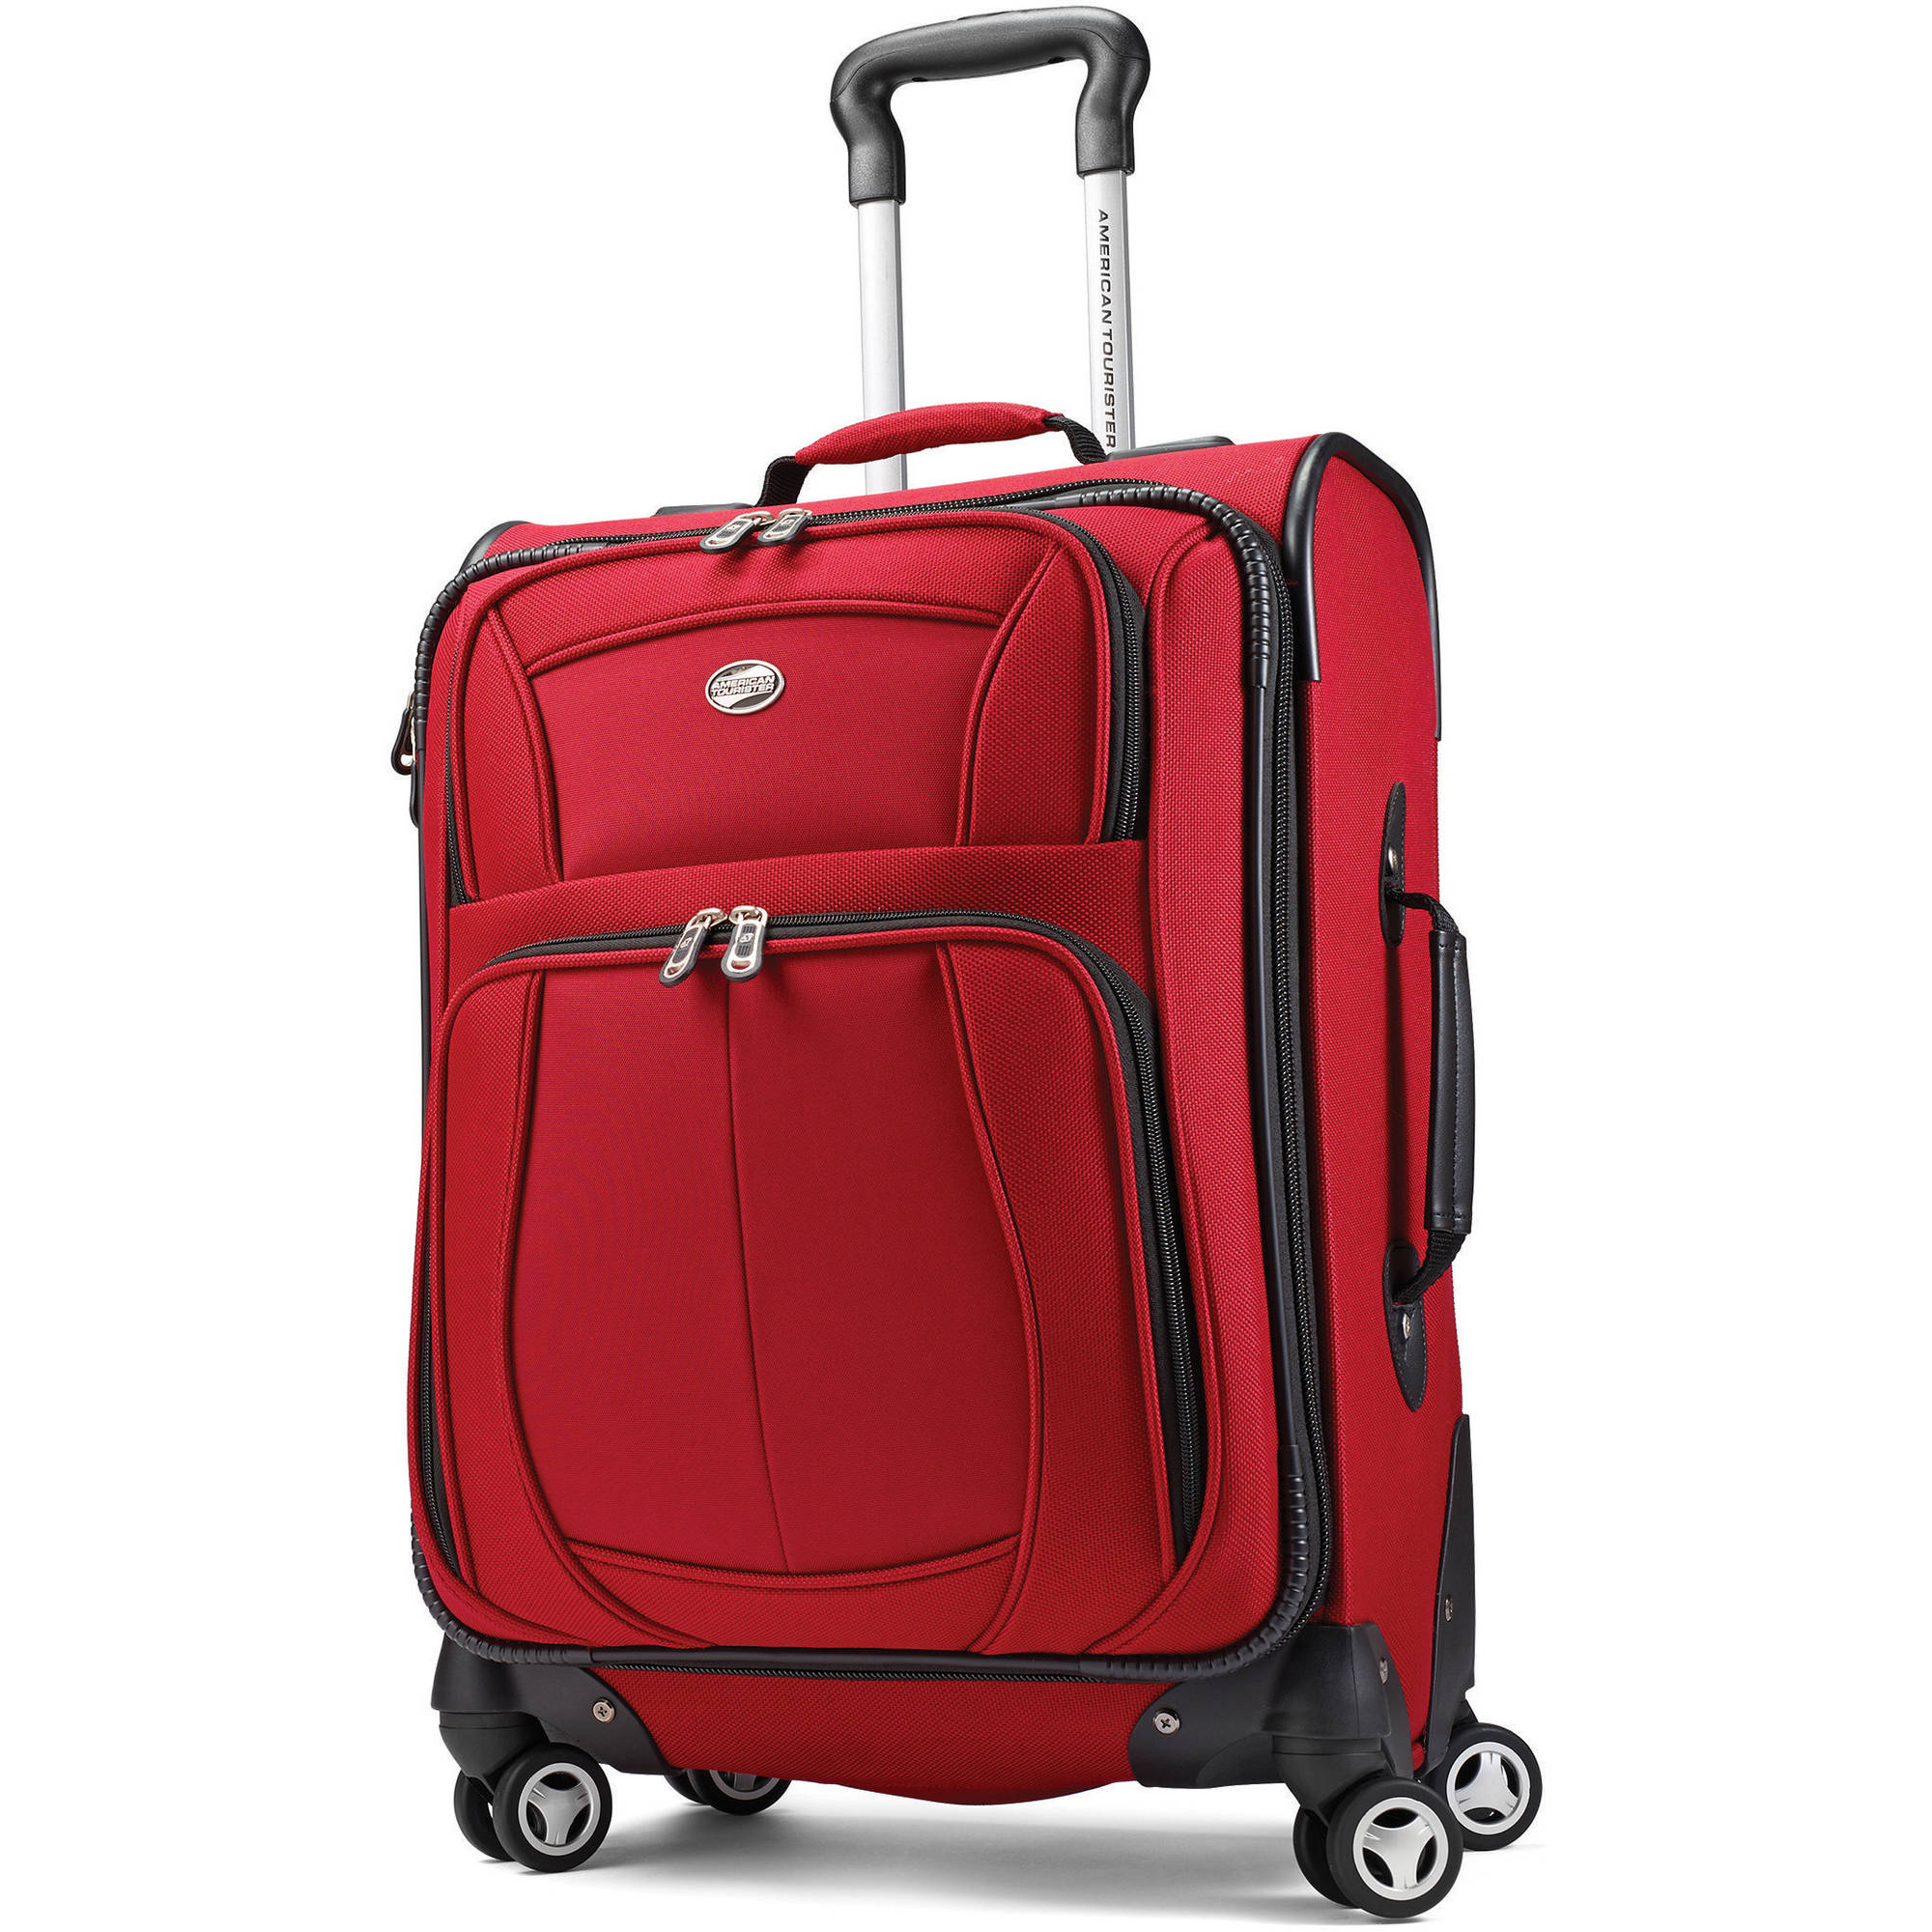 American Tourister Meridian 360 XLT Upright Spinner - Red